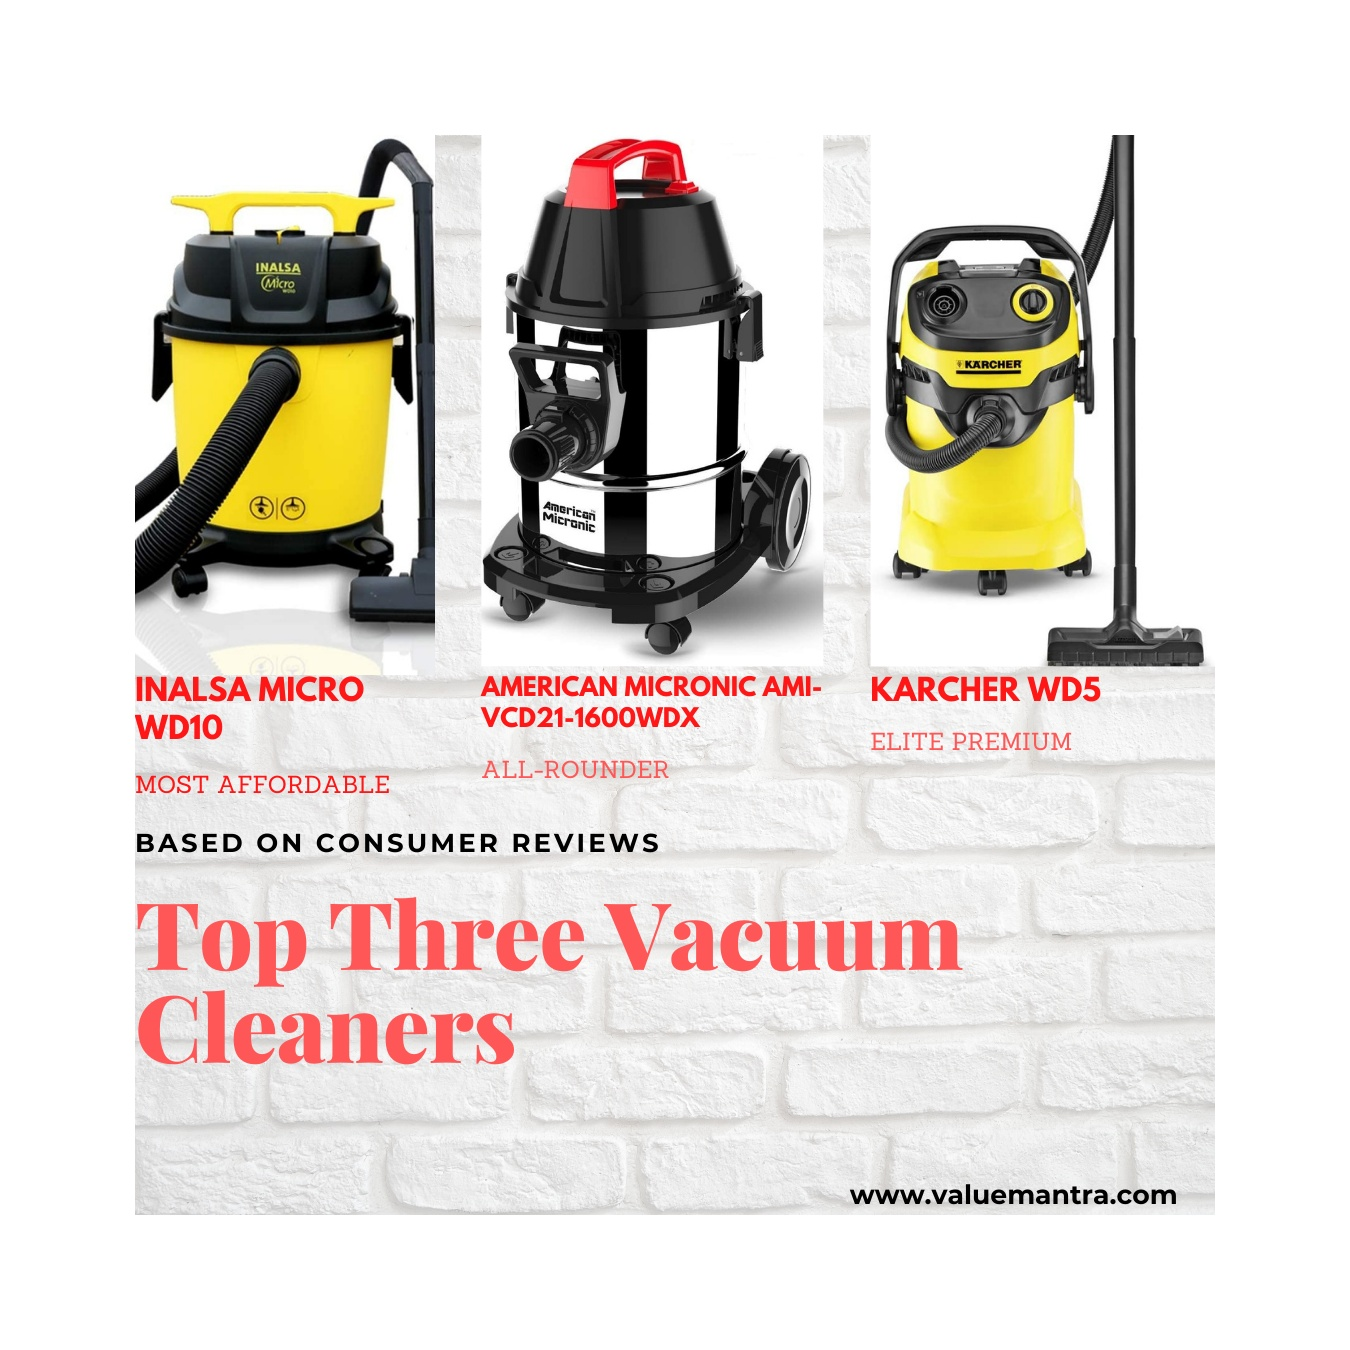 The Best Wet & Dry Vacuum Cleaner for Indian Homes!